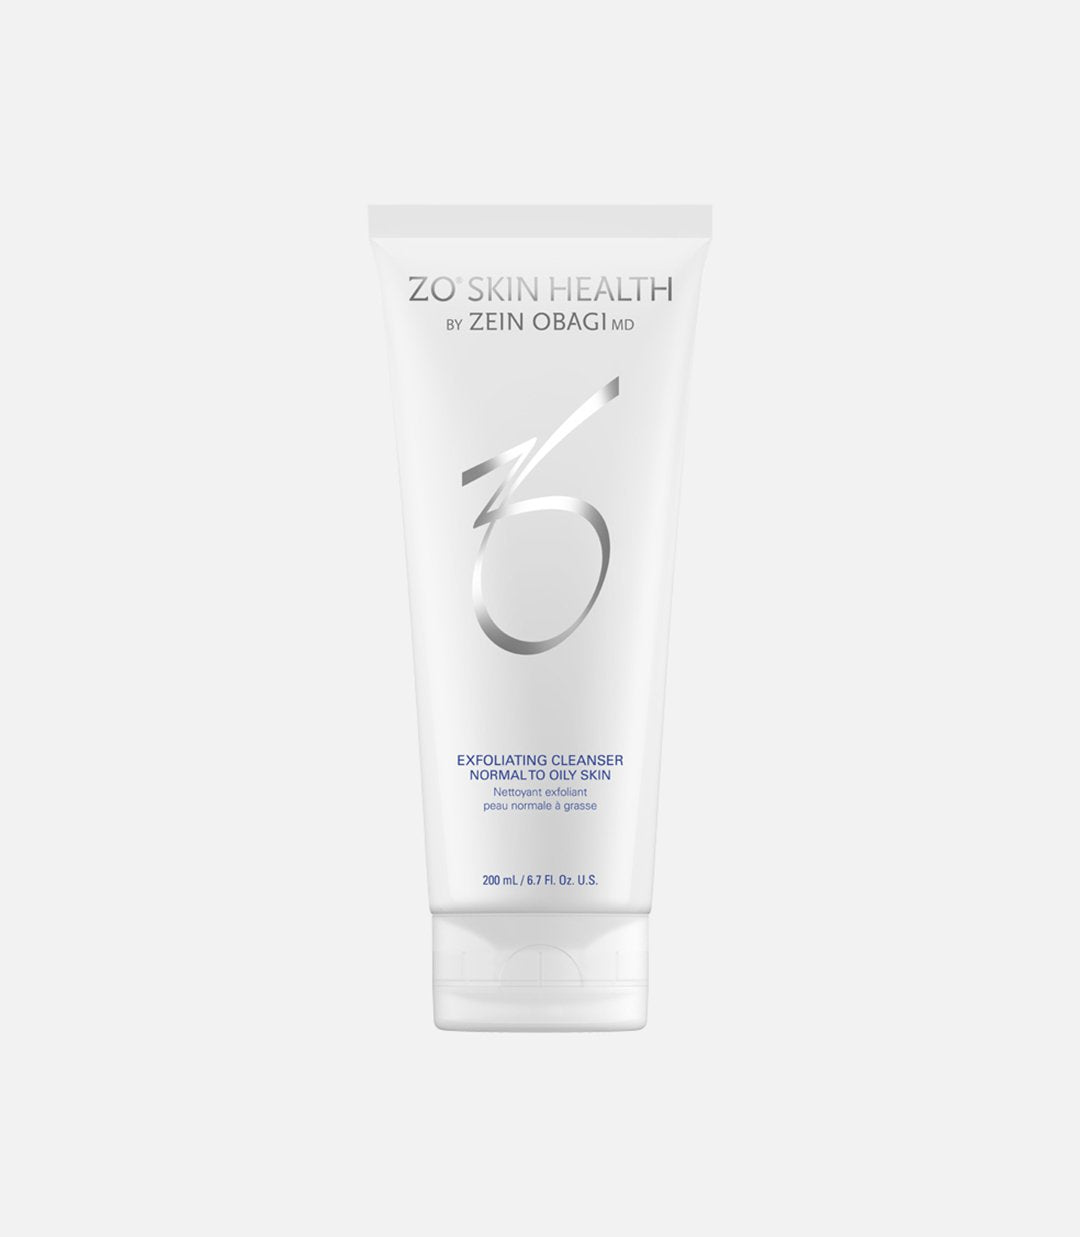 Exfoliating Cleanser - 200 mL / 6.7 Fl. Oz. - 2